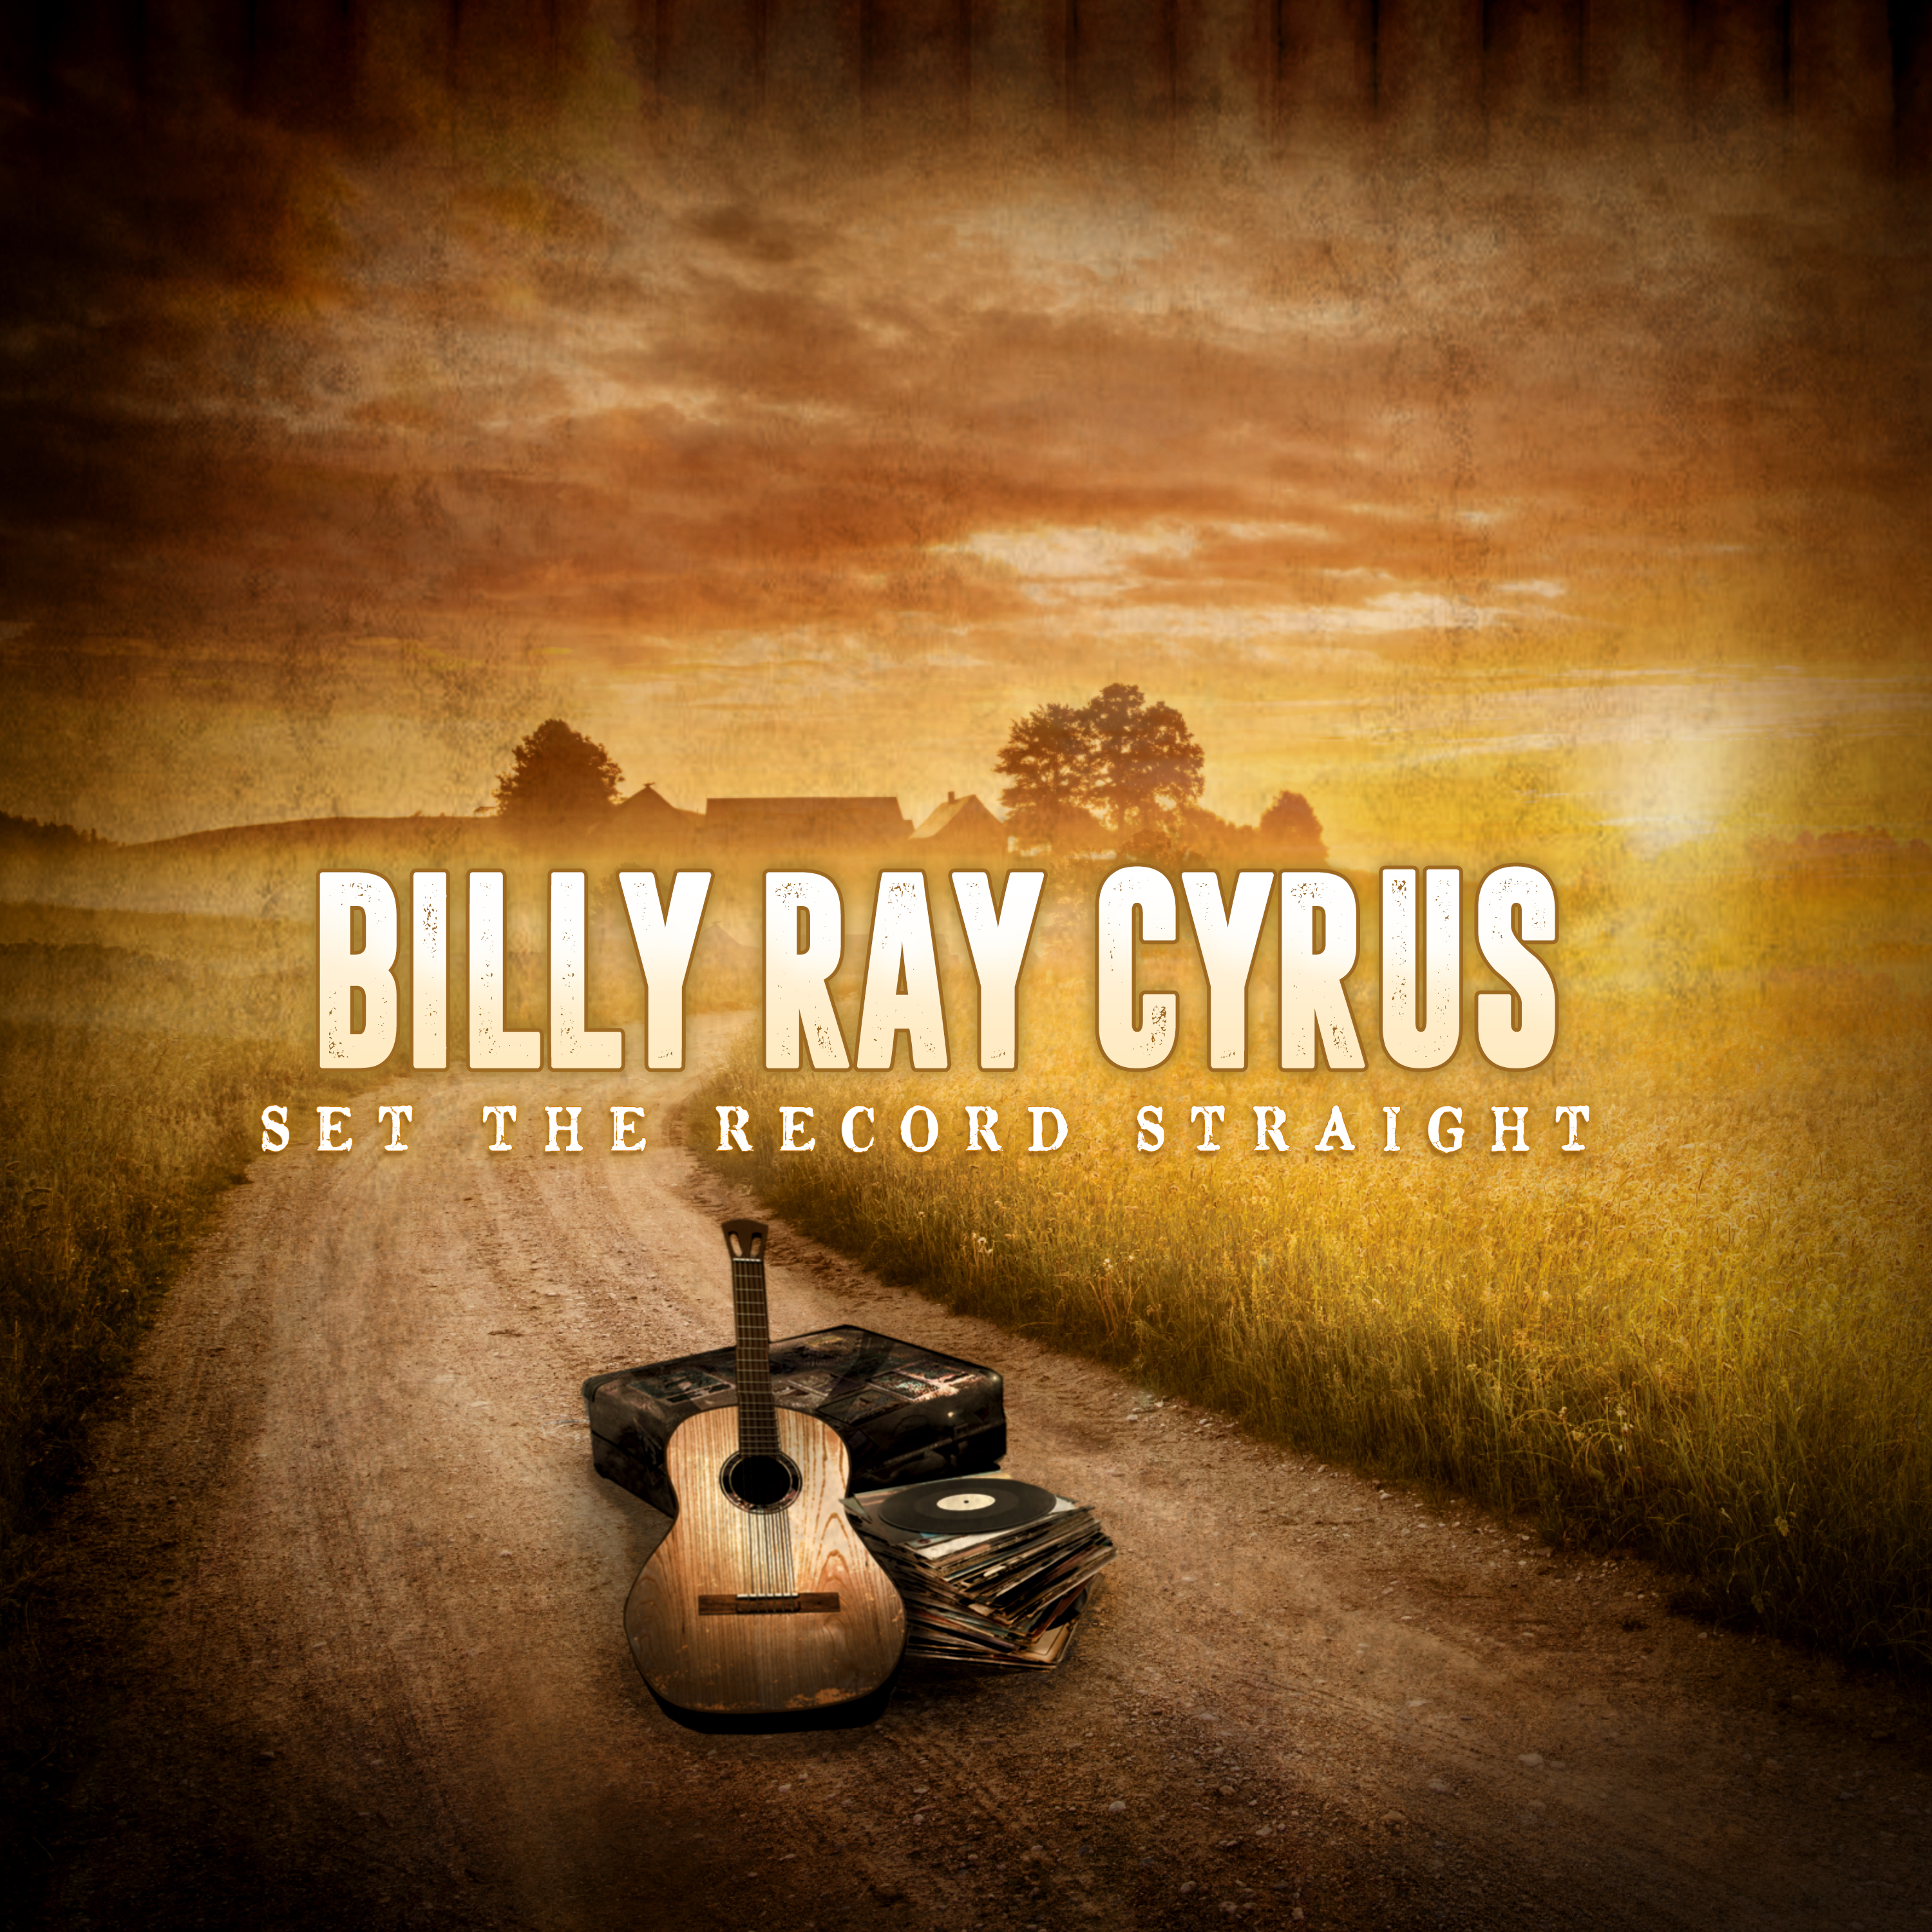 Billy Ray Cyrus; Cover art courtesy Webster PR